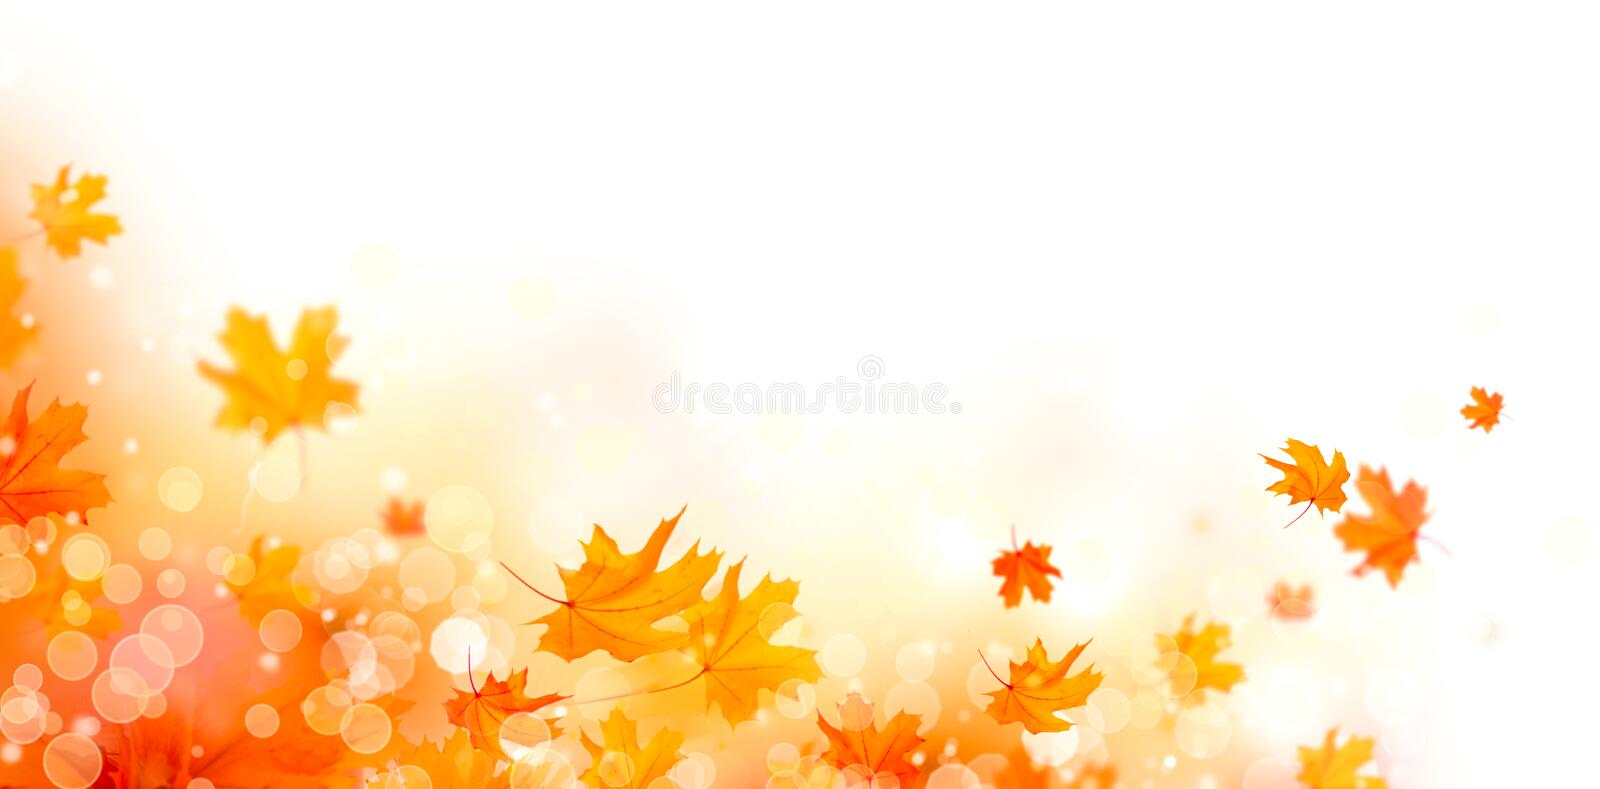 Autumn. Fall abstract background with colorful leaves and sun flares stock illustration